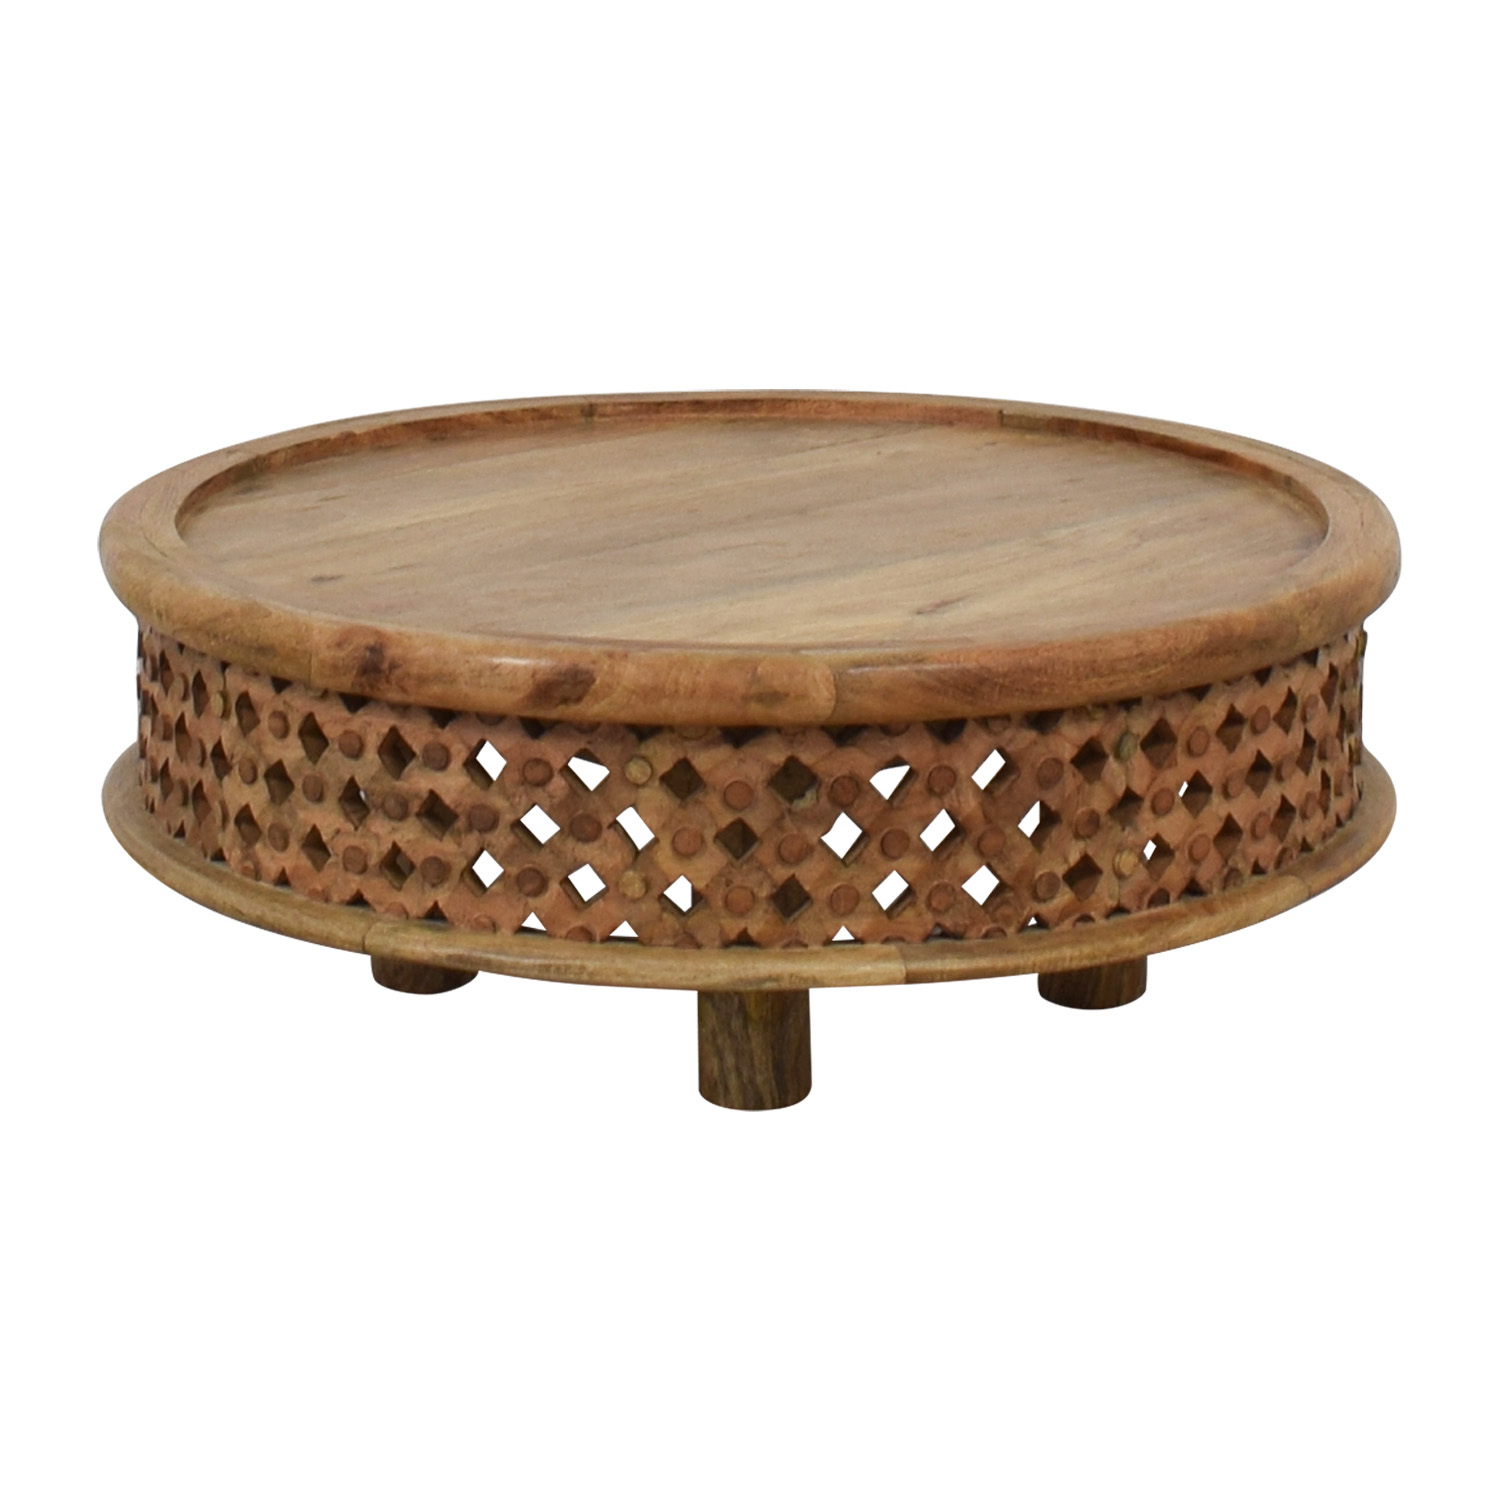 West Elm West Elm Carved Wood Table dimensions